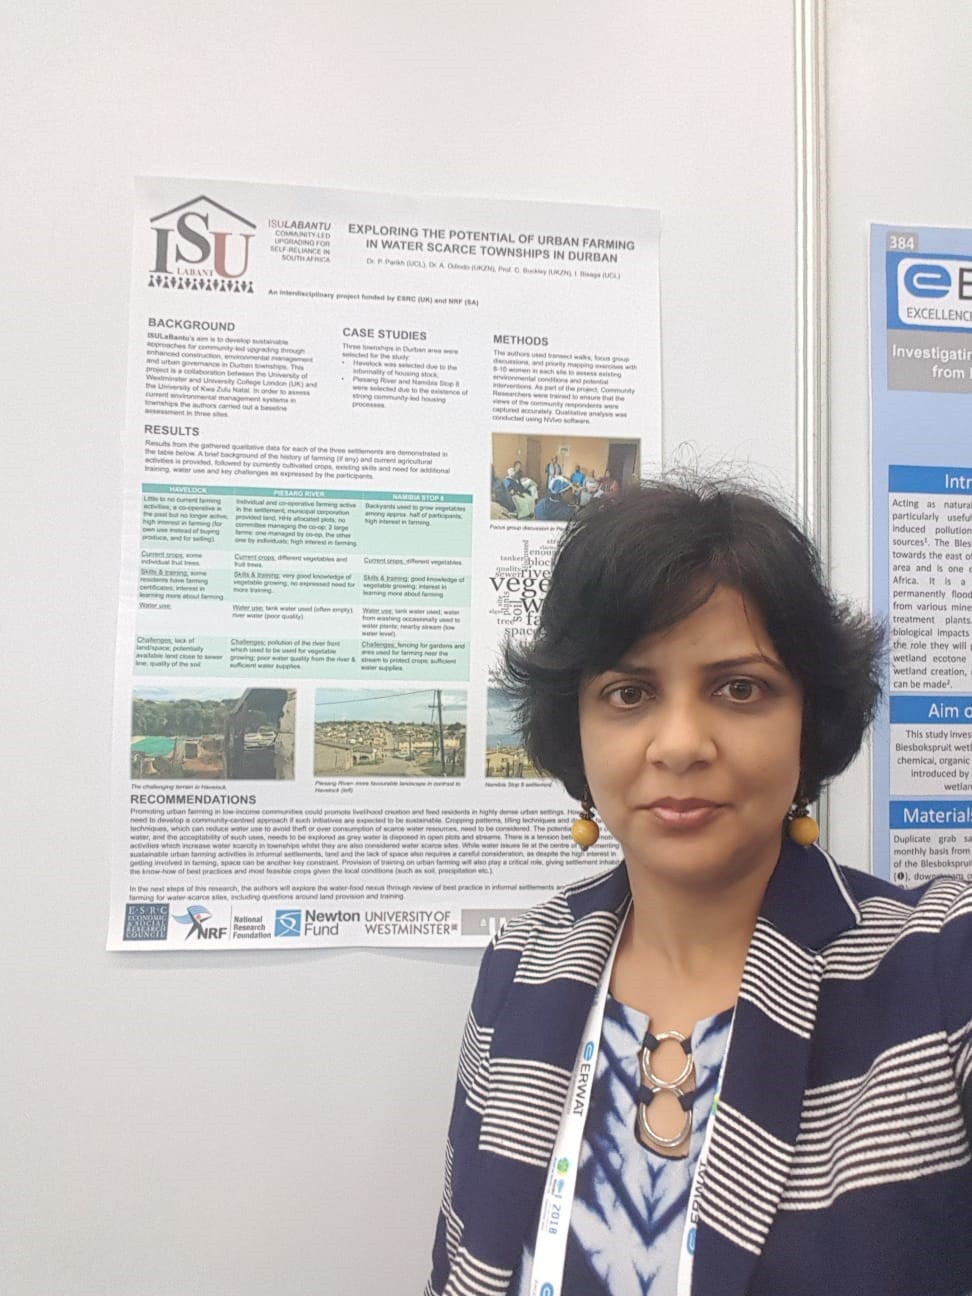 Dr. Parikh with Phase 3 poster at the conference.